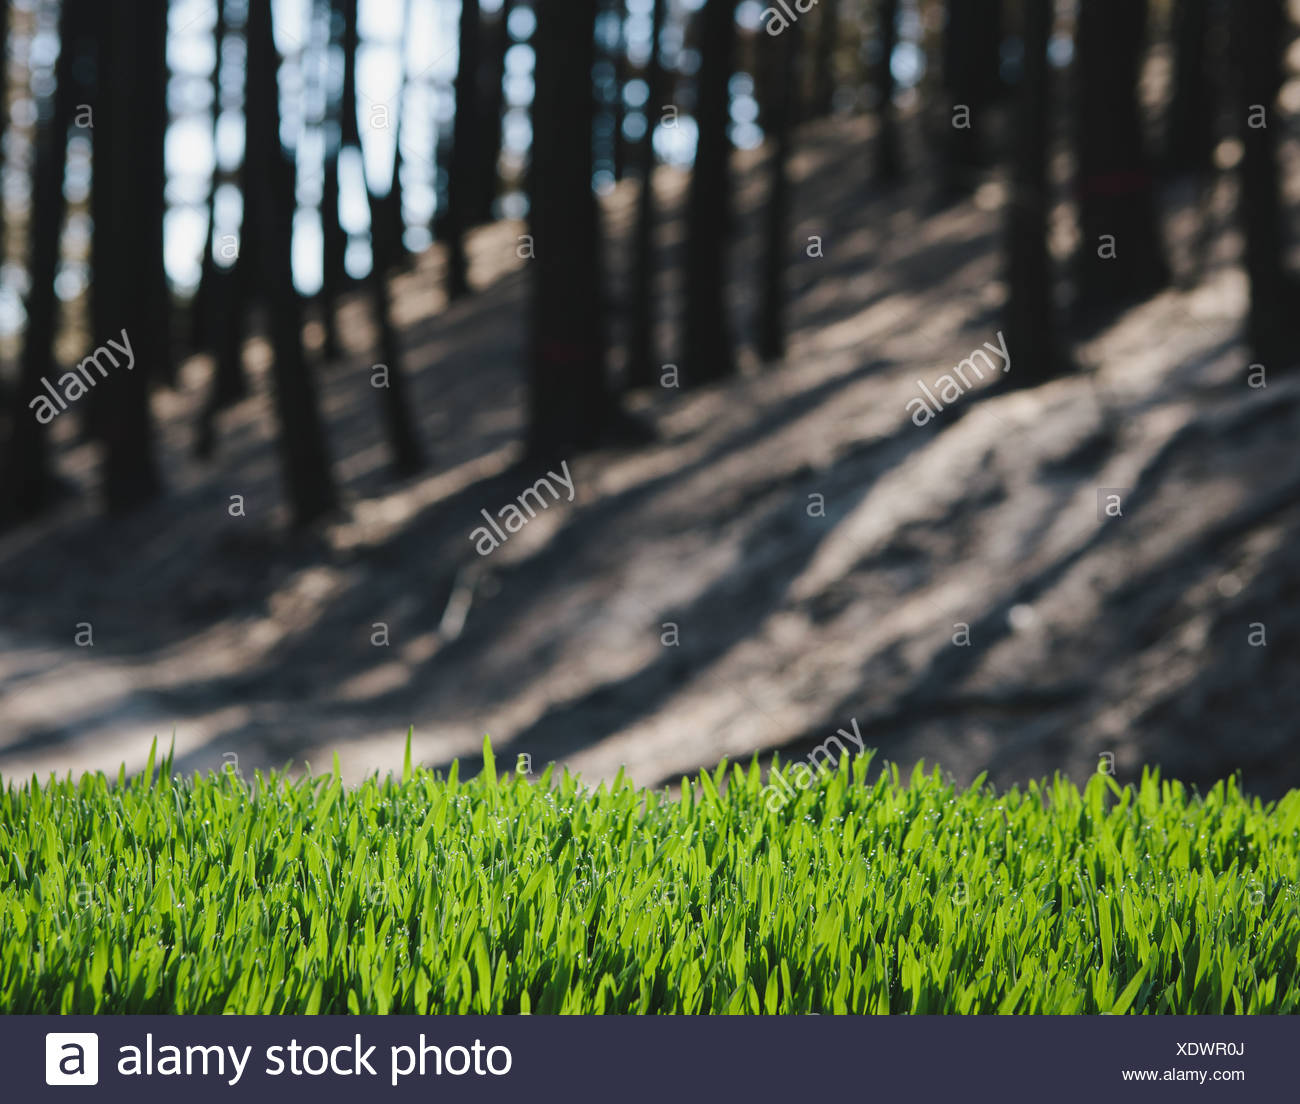 Washington state USA green grass in foreground recently burned forest - Stock Image